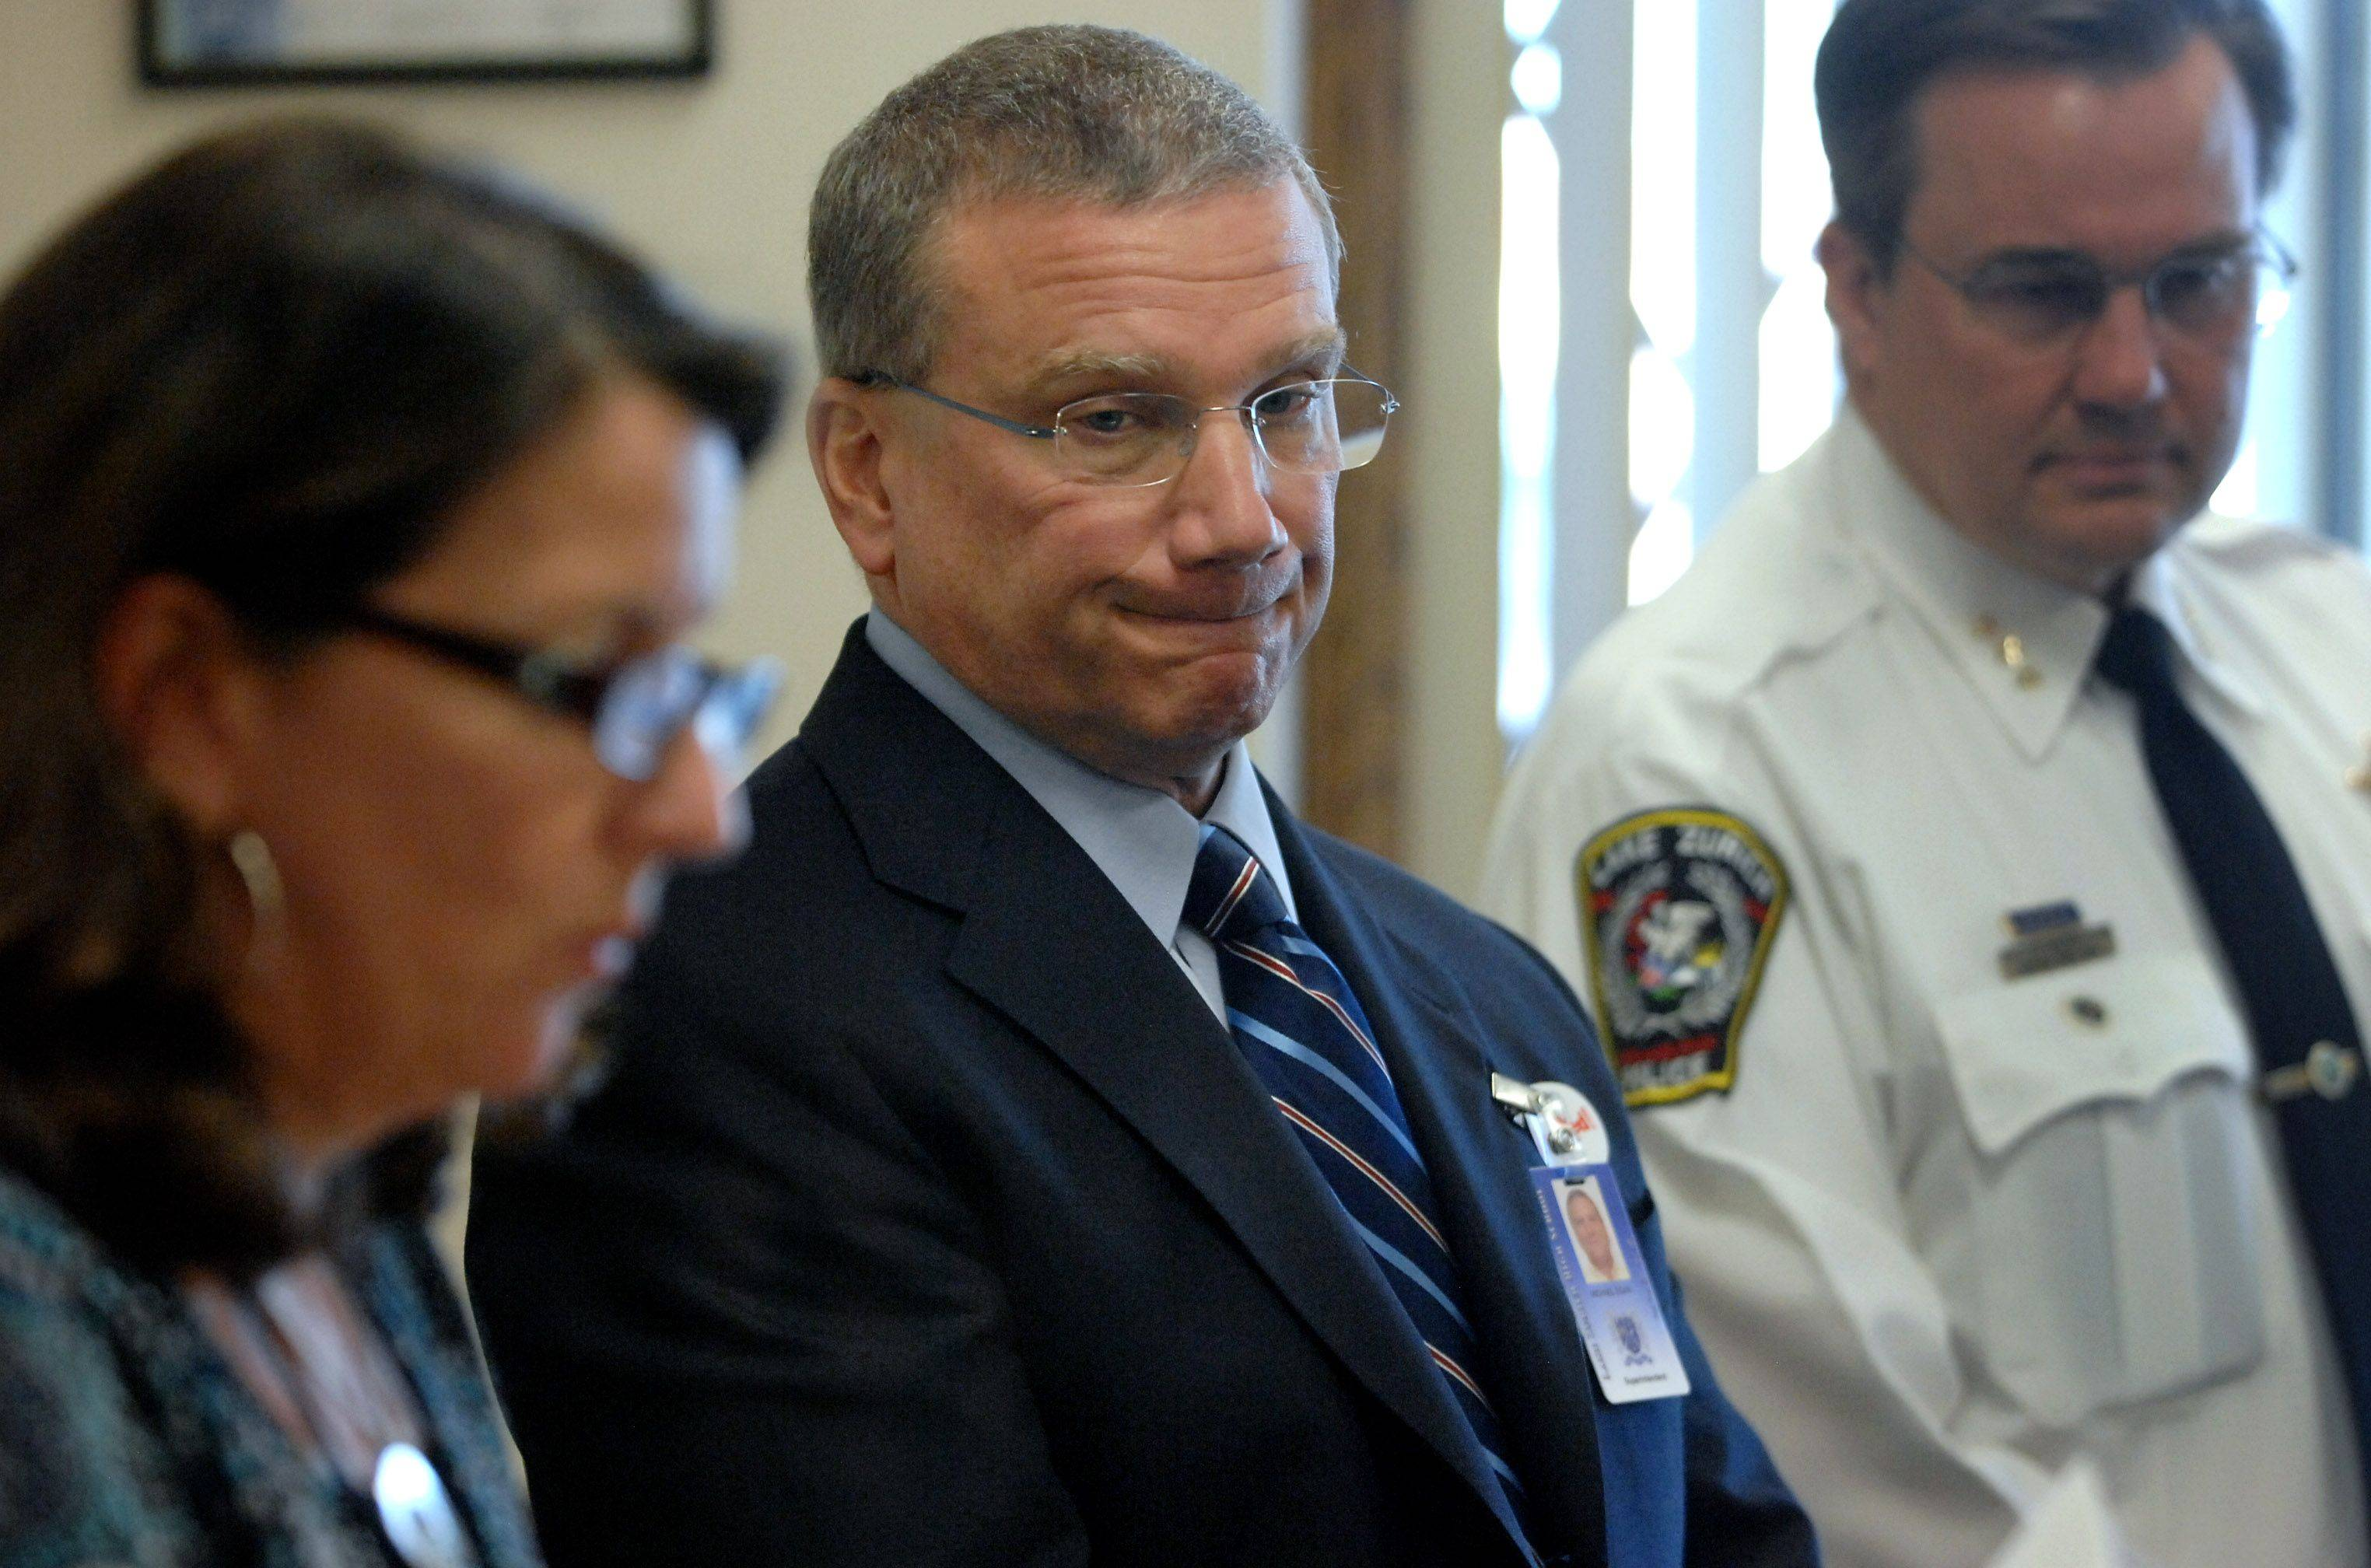 Lake Zurich Unit District 95 spokeswoman Jean Malek, left, addresses the media Tuesday regarding the arrest of Ronald D. Culver, who taught at the district's high school. Superintendent Michael Egan, center, and police Chief Patrick Finlon listen to Malek.